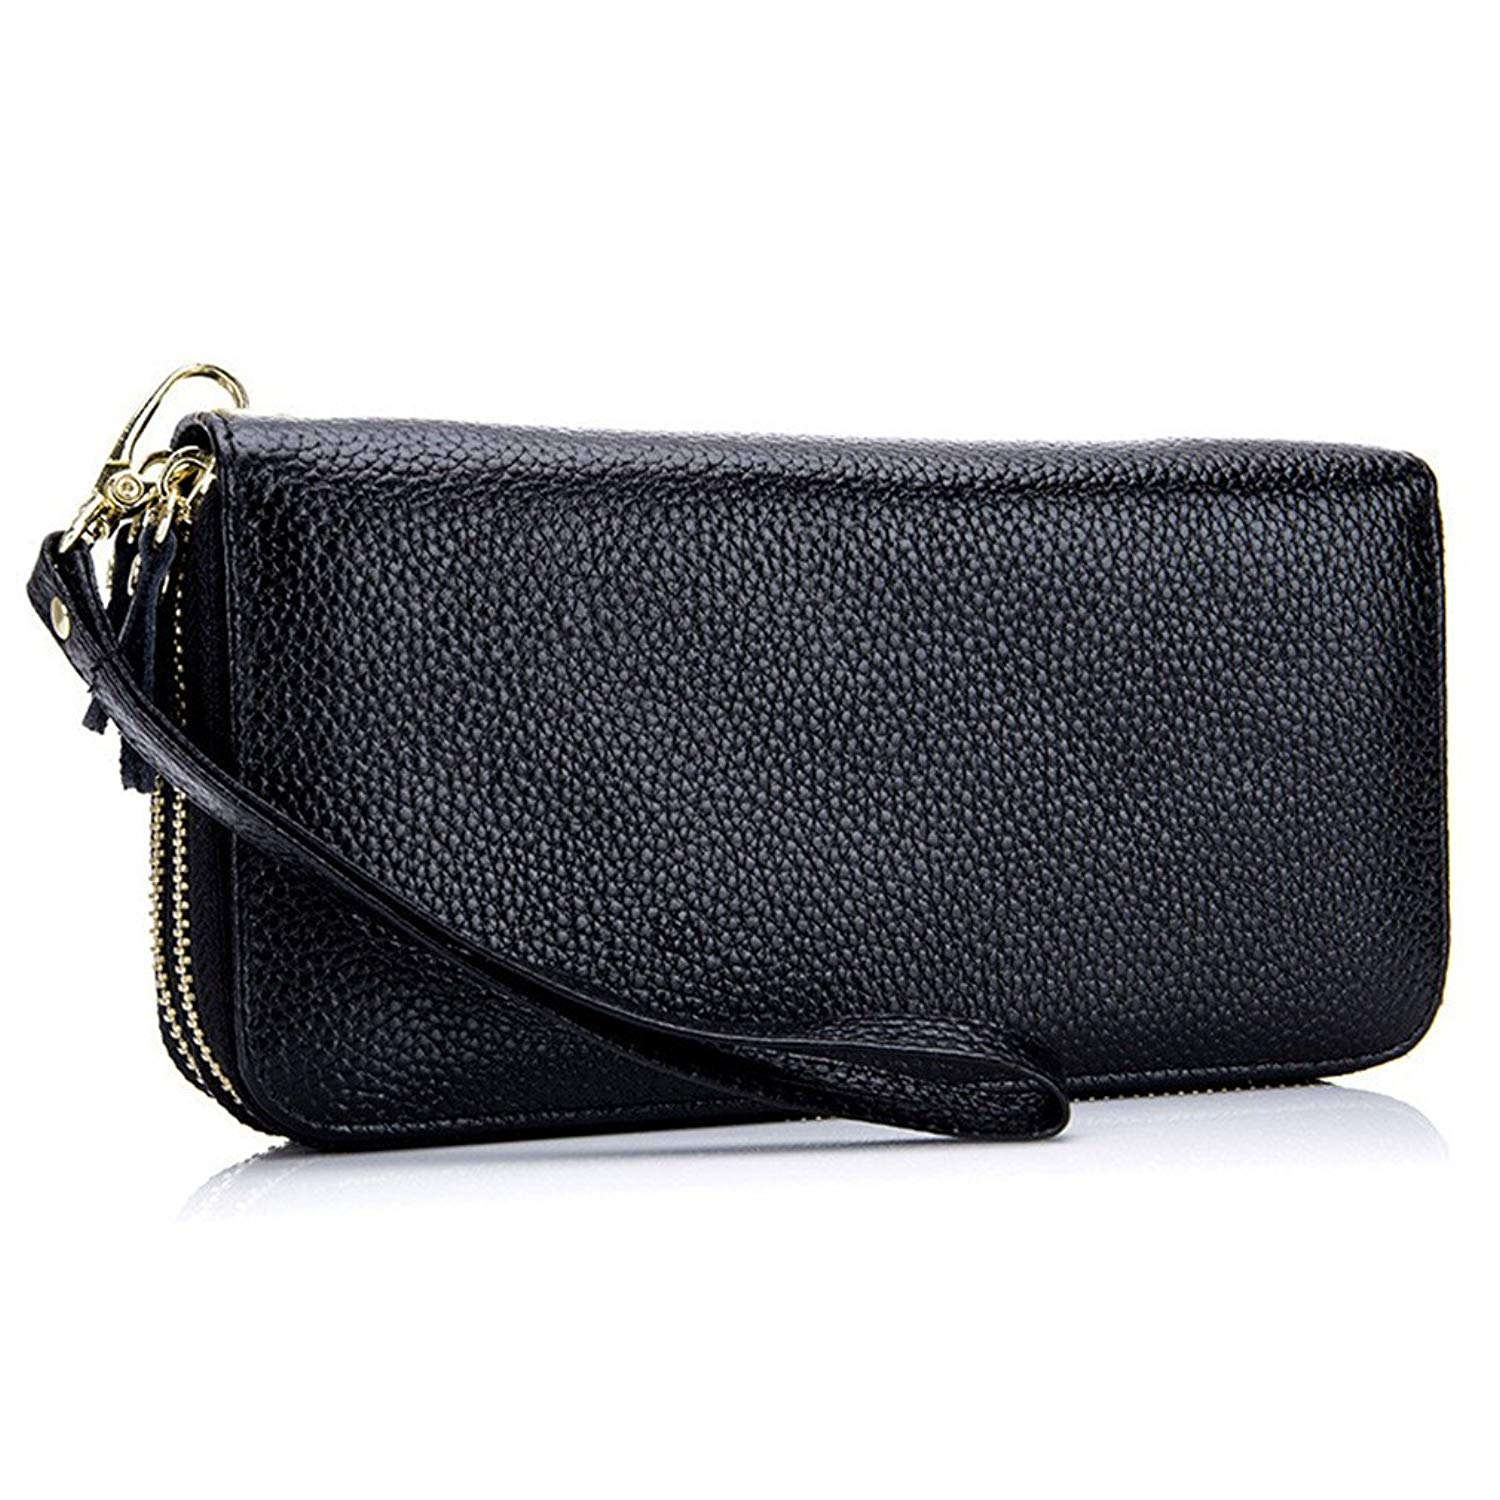 Cheap Ladies Leather Wallets Find Deals On Nucelle Women Real Genuine Purse Daily Backpack Blue Get Quotations Long Zipper Female Clutch Bags Phone Wallet Card Holder Wristlet 1190c